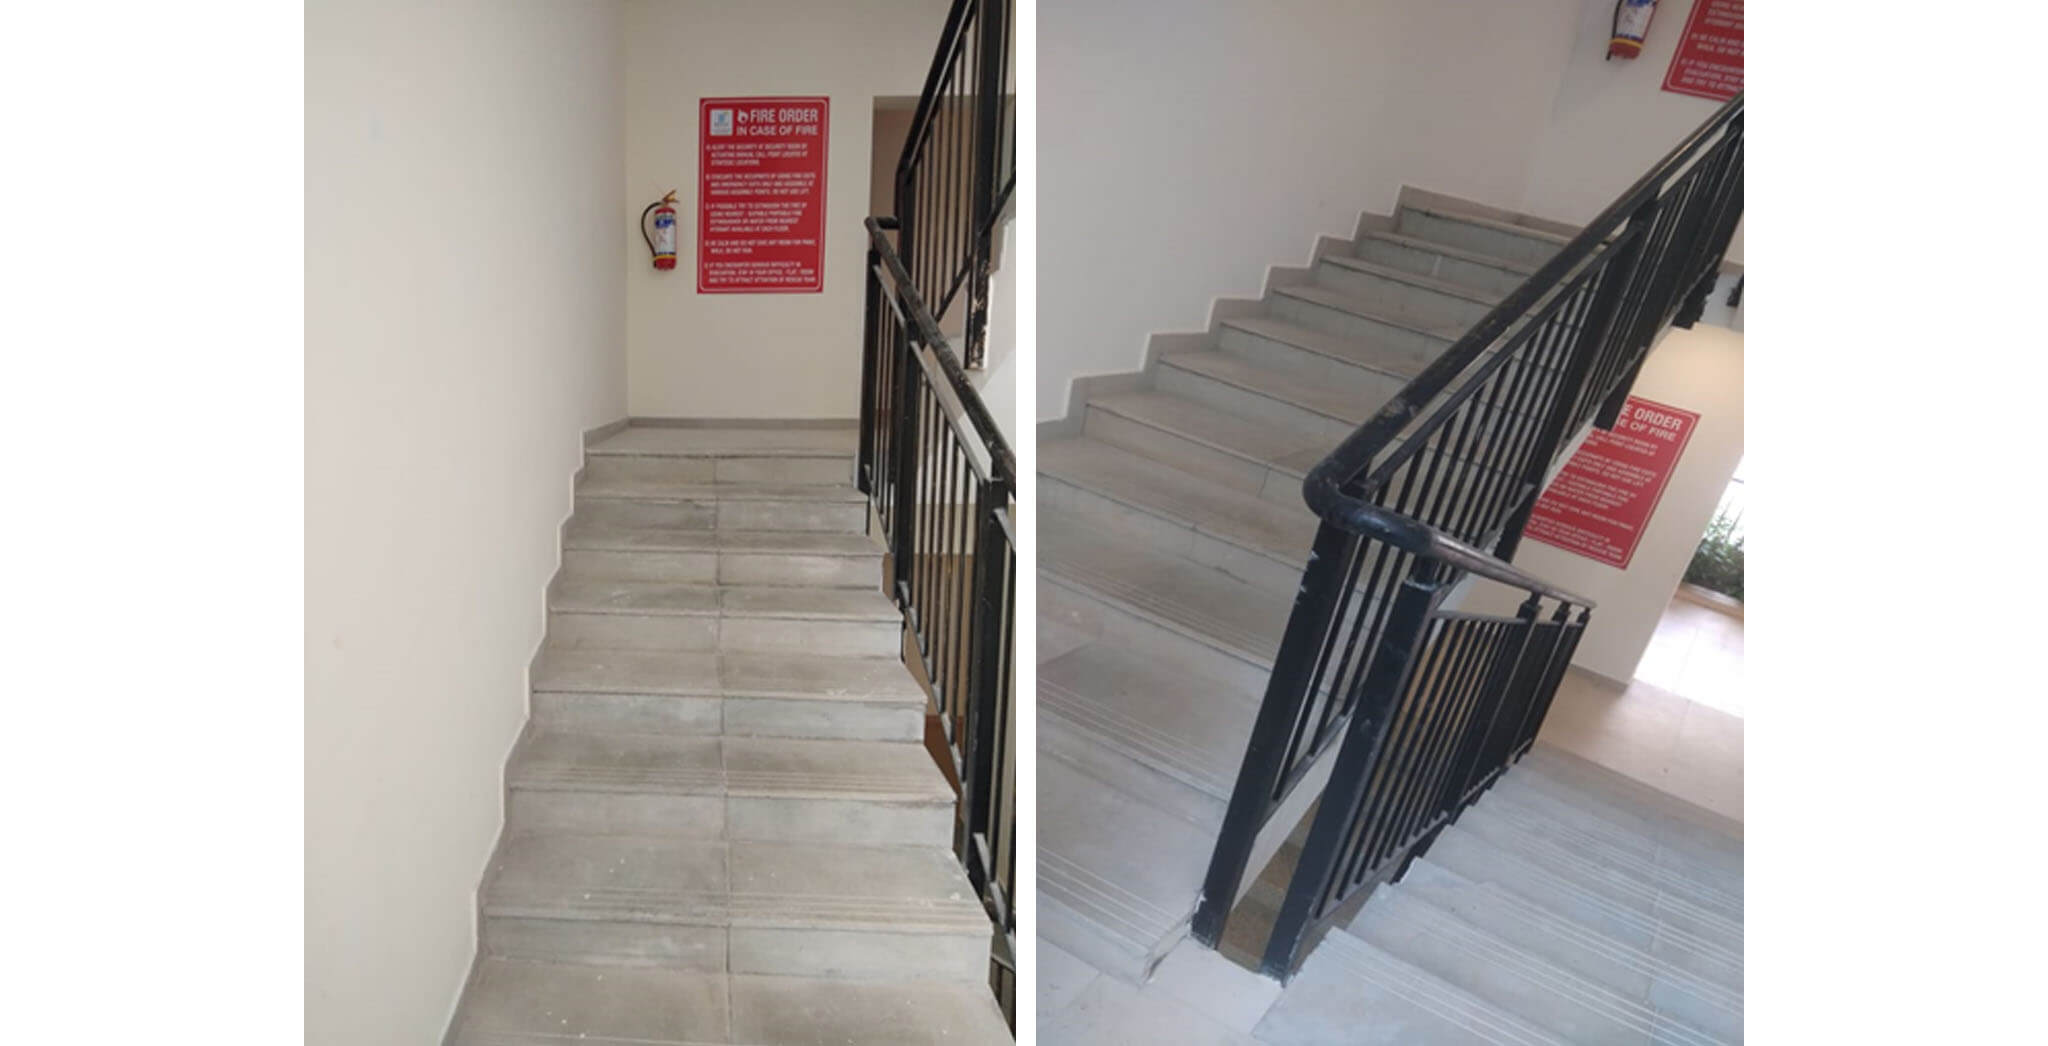 May 2020 - Deodar—B block: Staircase—Final coat painting in progress